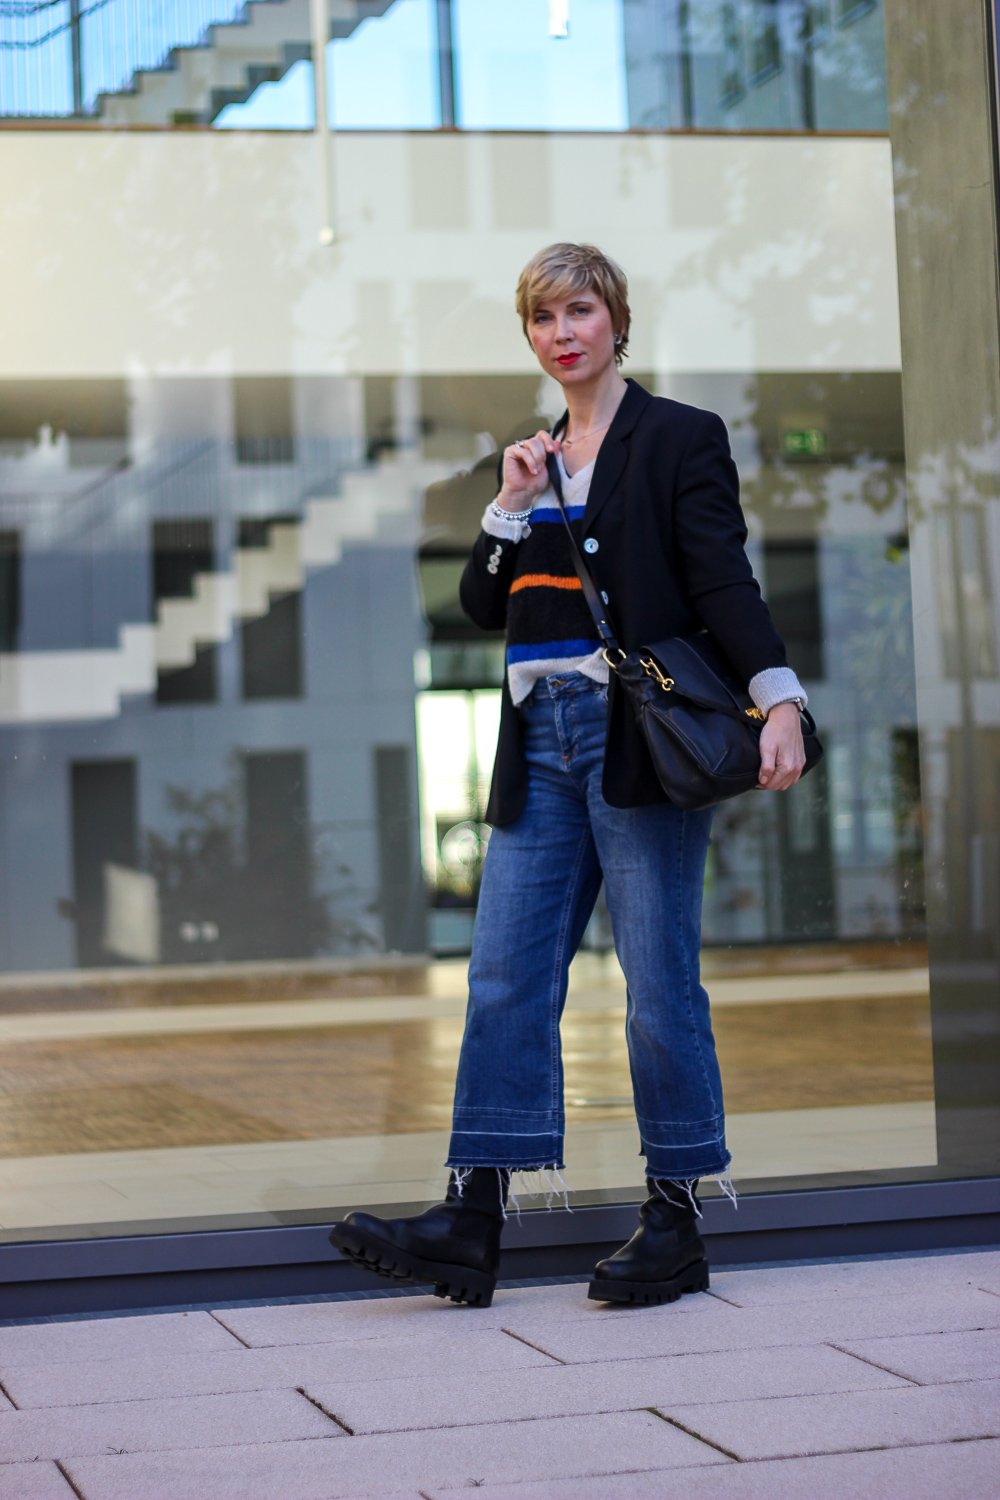 conny doll lifestyle: Styling mit Boots, Herbstoutfit, Chunky-Boots